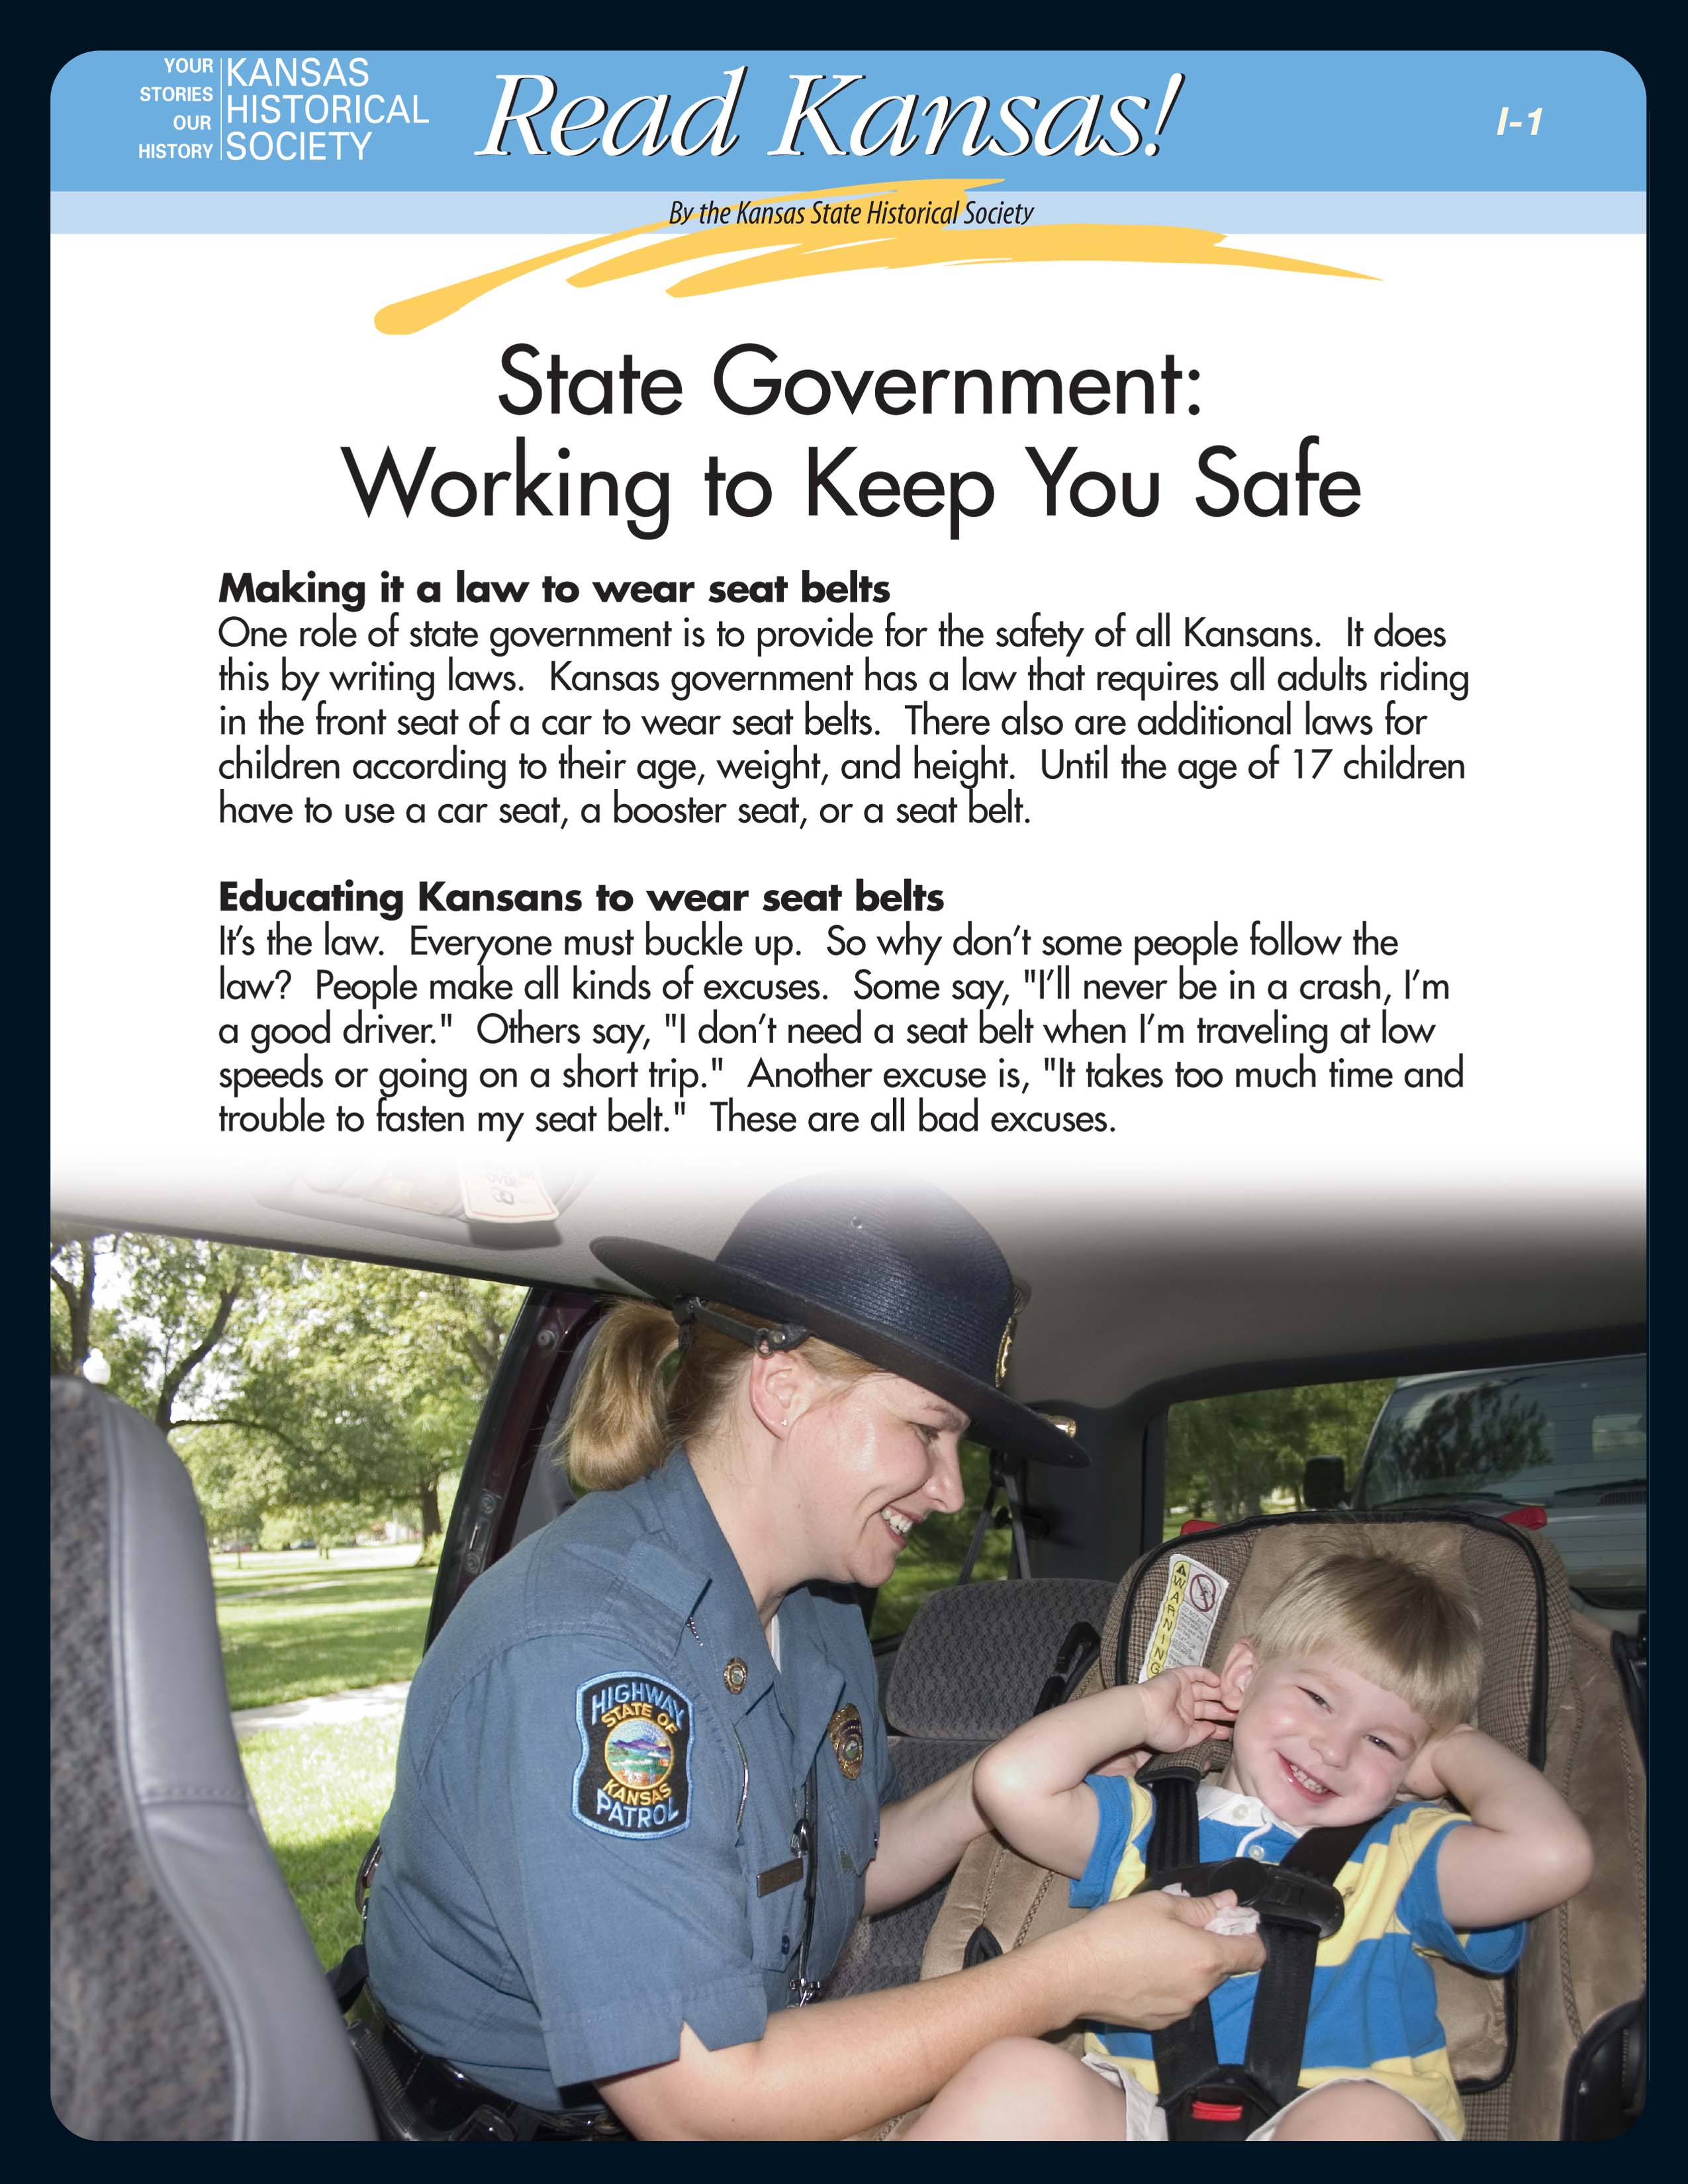 Read Kansas!: I-01 Getting to Know Government